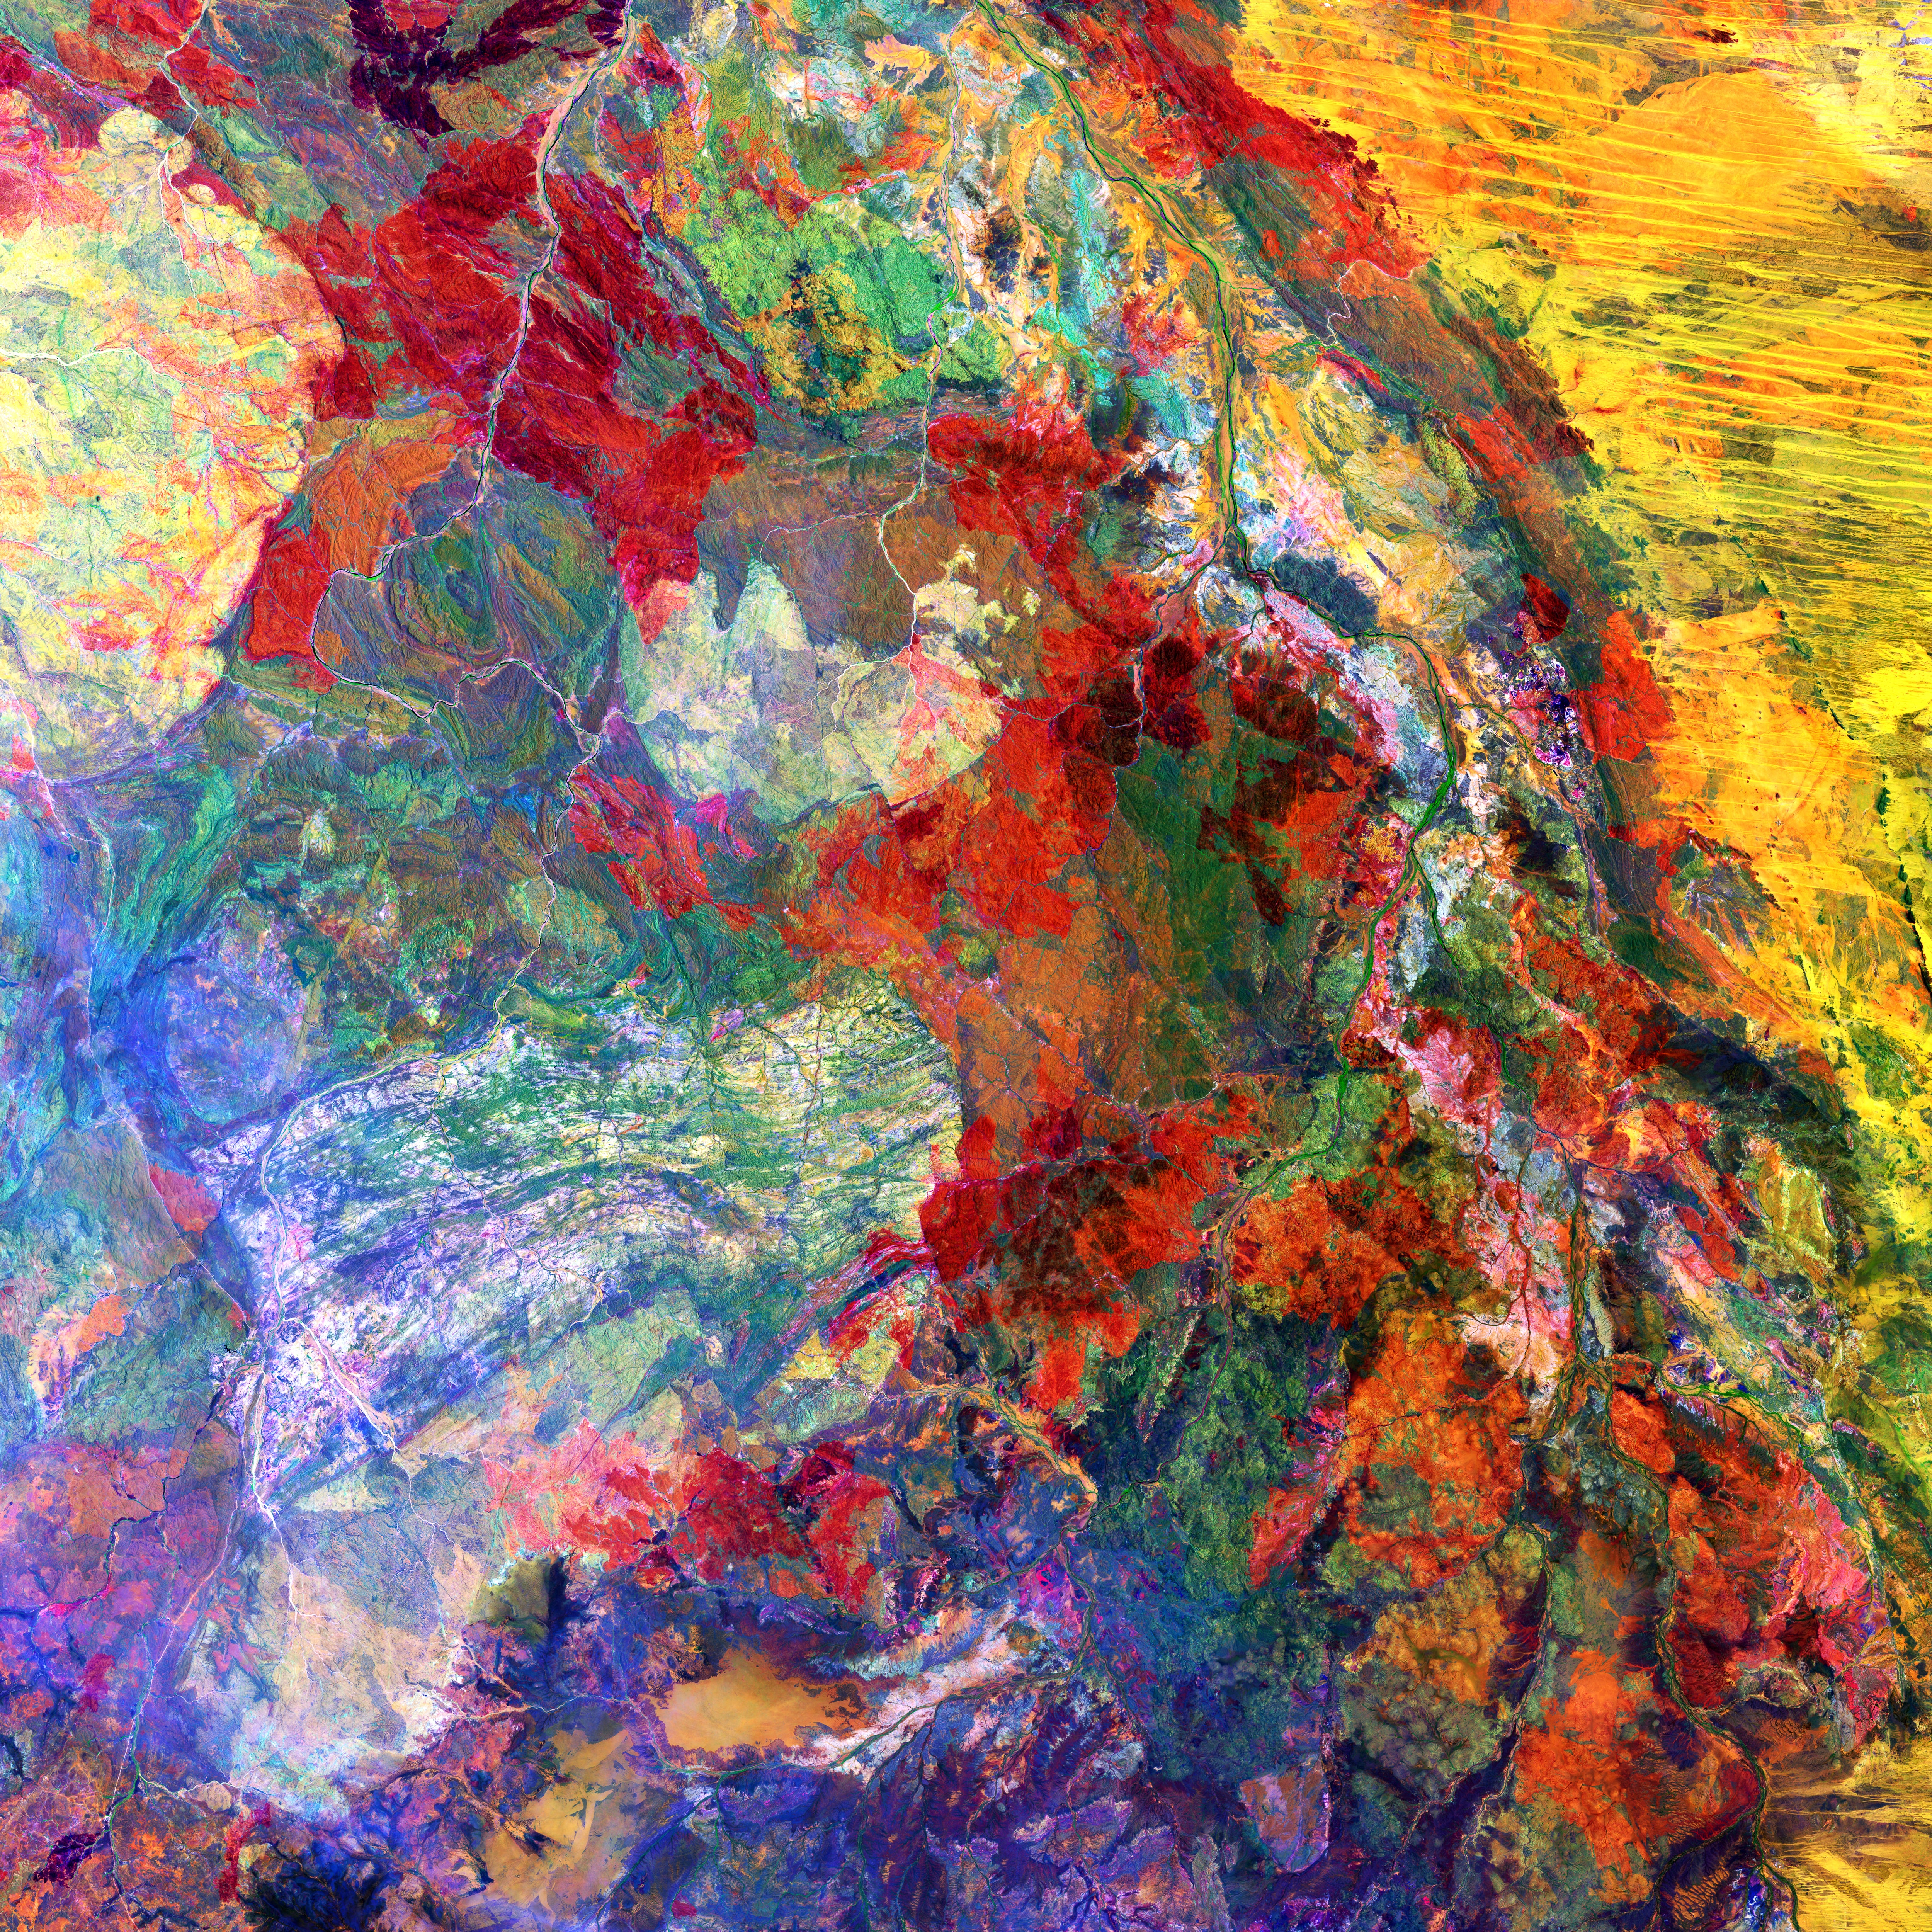 89040 download wallpaper Abstract, Land, Earth, View From Above, Abstraction, Stains, Spots, Multicolored, Motley screensavers and pictures for free